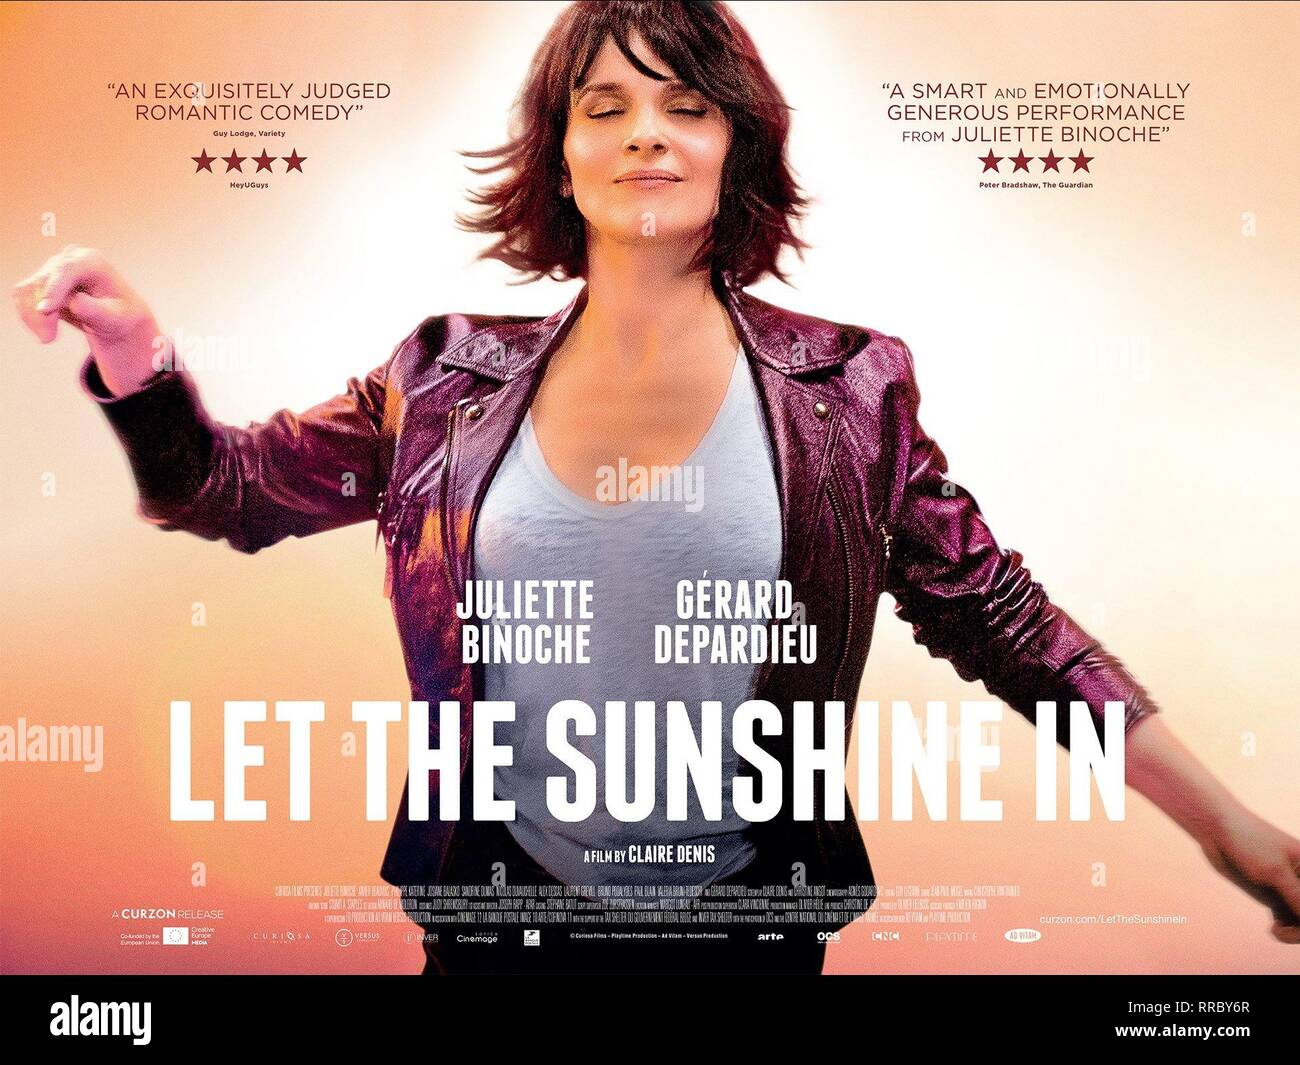 LET THE SUN SHINE IN, JULIETTE BINOCHE, 2017 - Stock Image